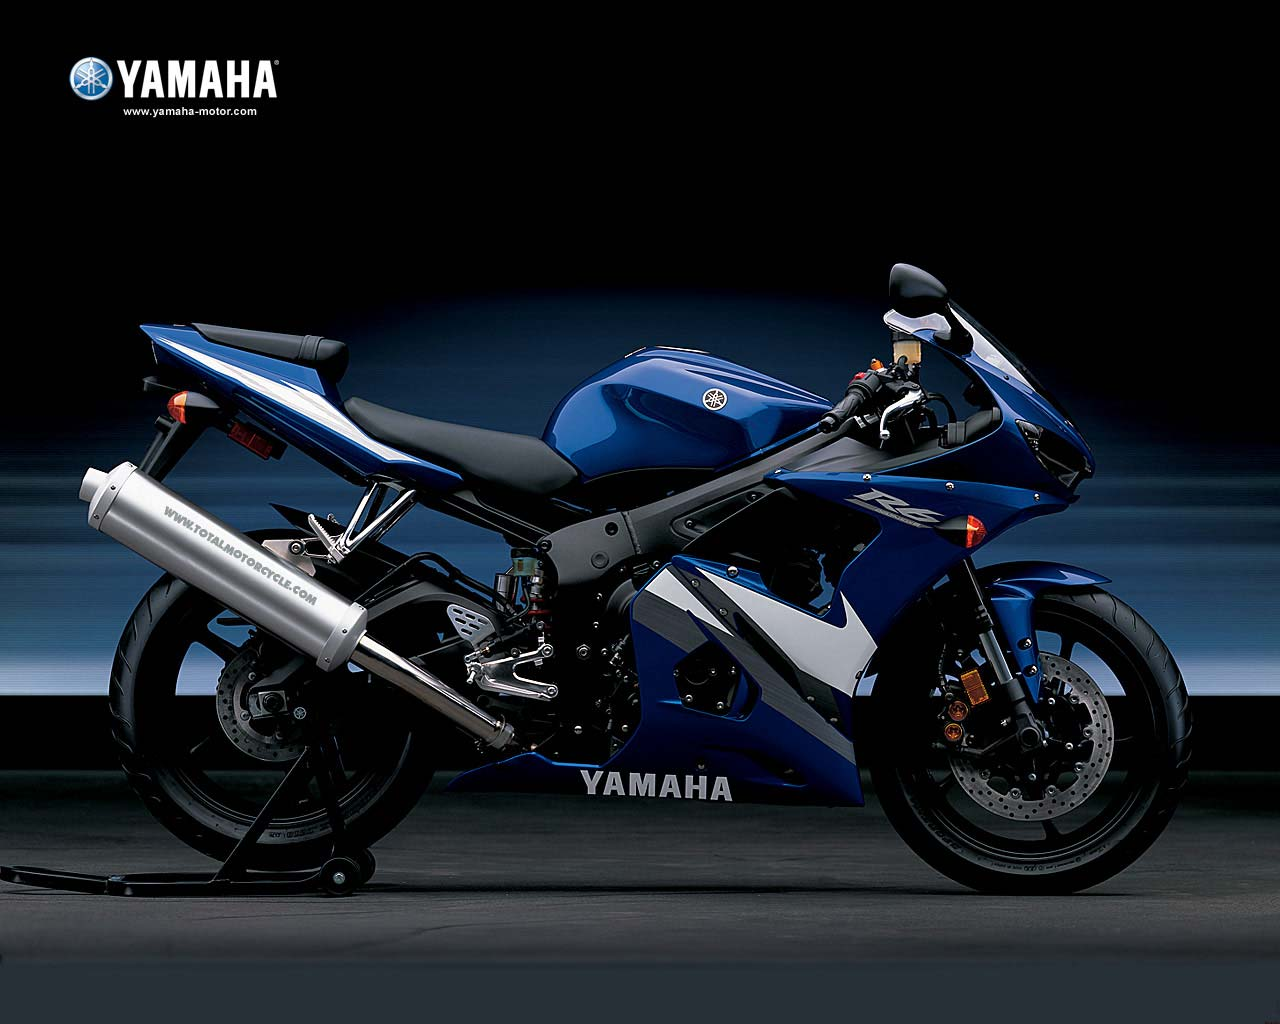 2005 yamaha r6 manual how to and user guide instructions u2022 rh taxibermuda co 2004 yamaha r6 manual free download 2003 yamaha r6 service manual